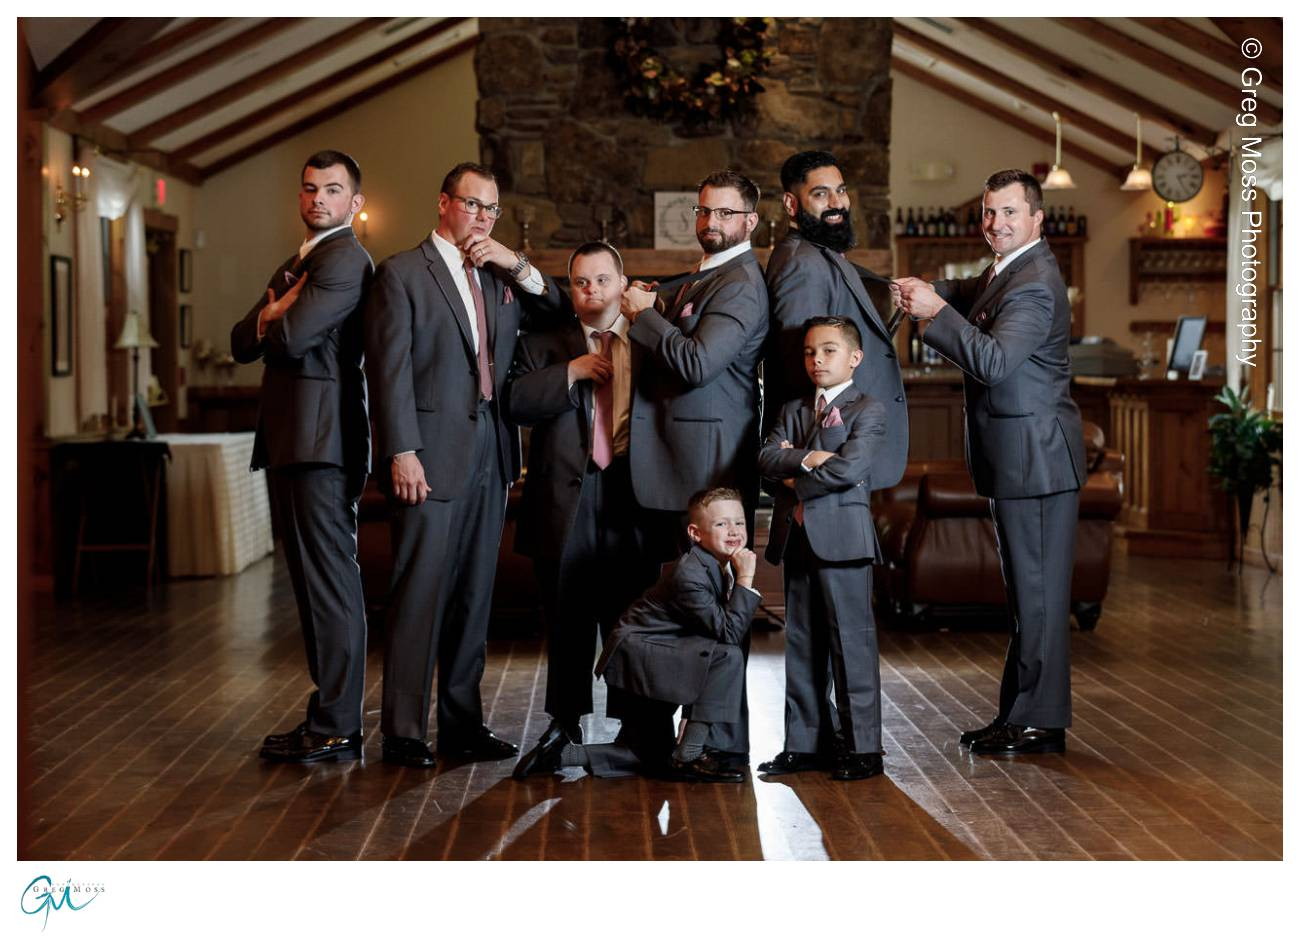 Groom and Groomsmen in front of fireplace